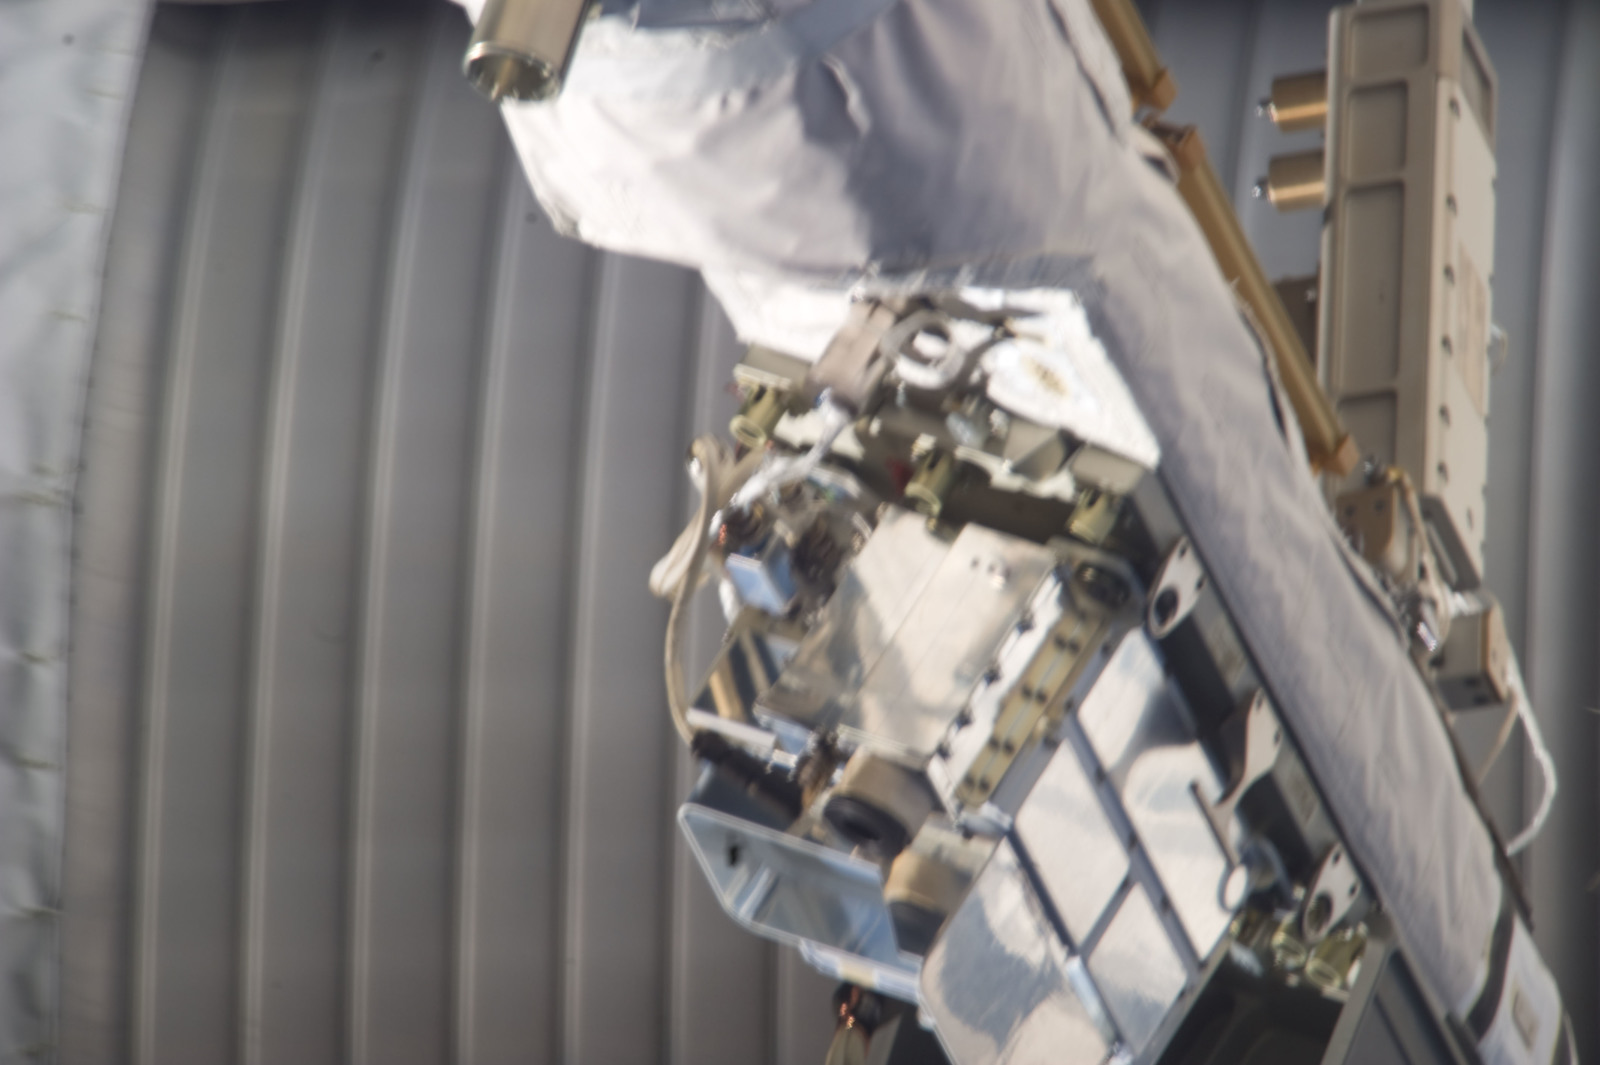 S134E011364 - STS-134 - Close-up view of SSRMS